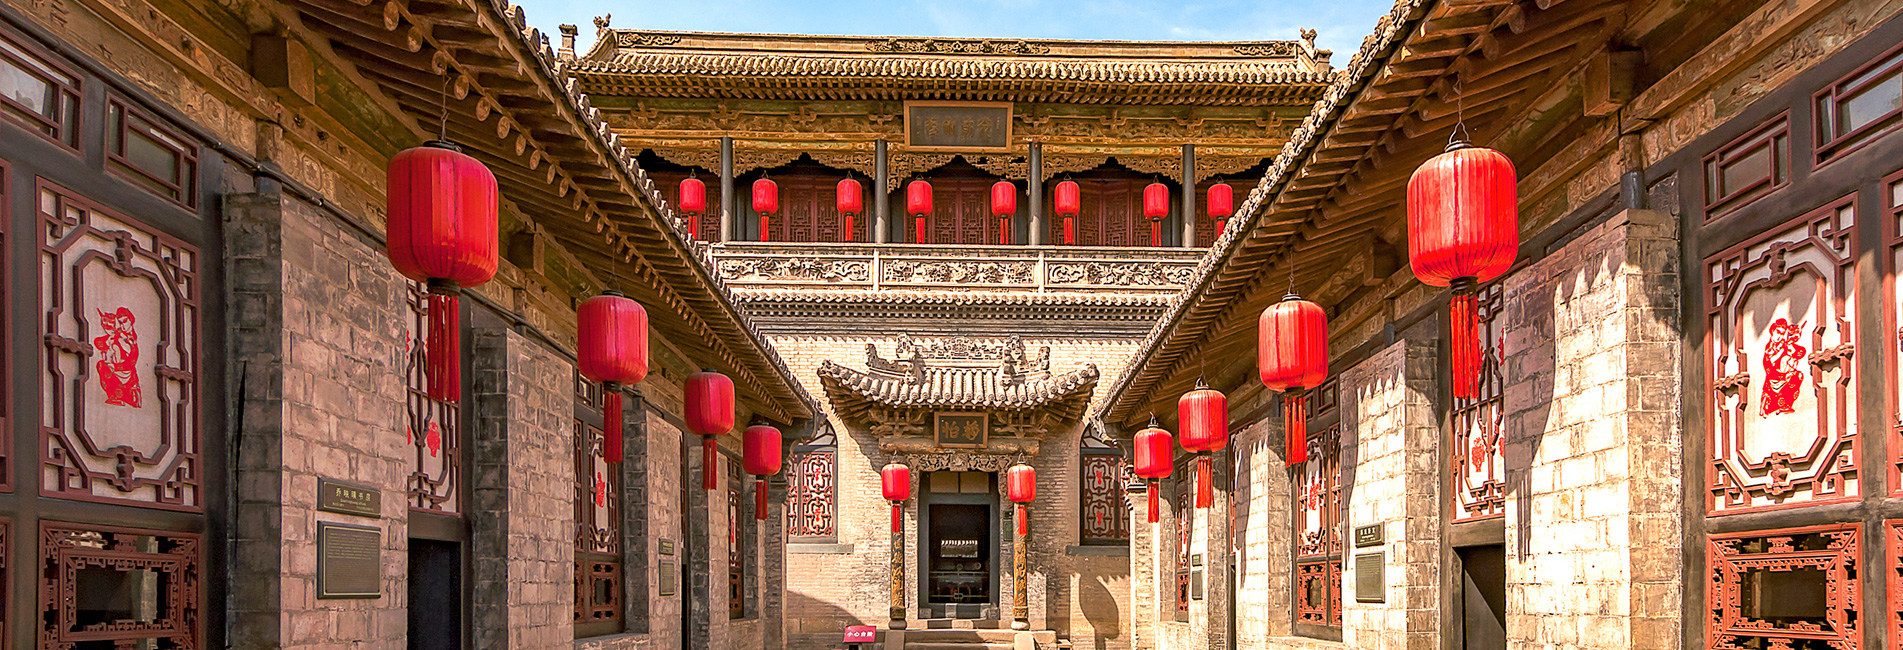 Pingtao Ancient City, red lantern